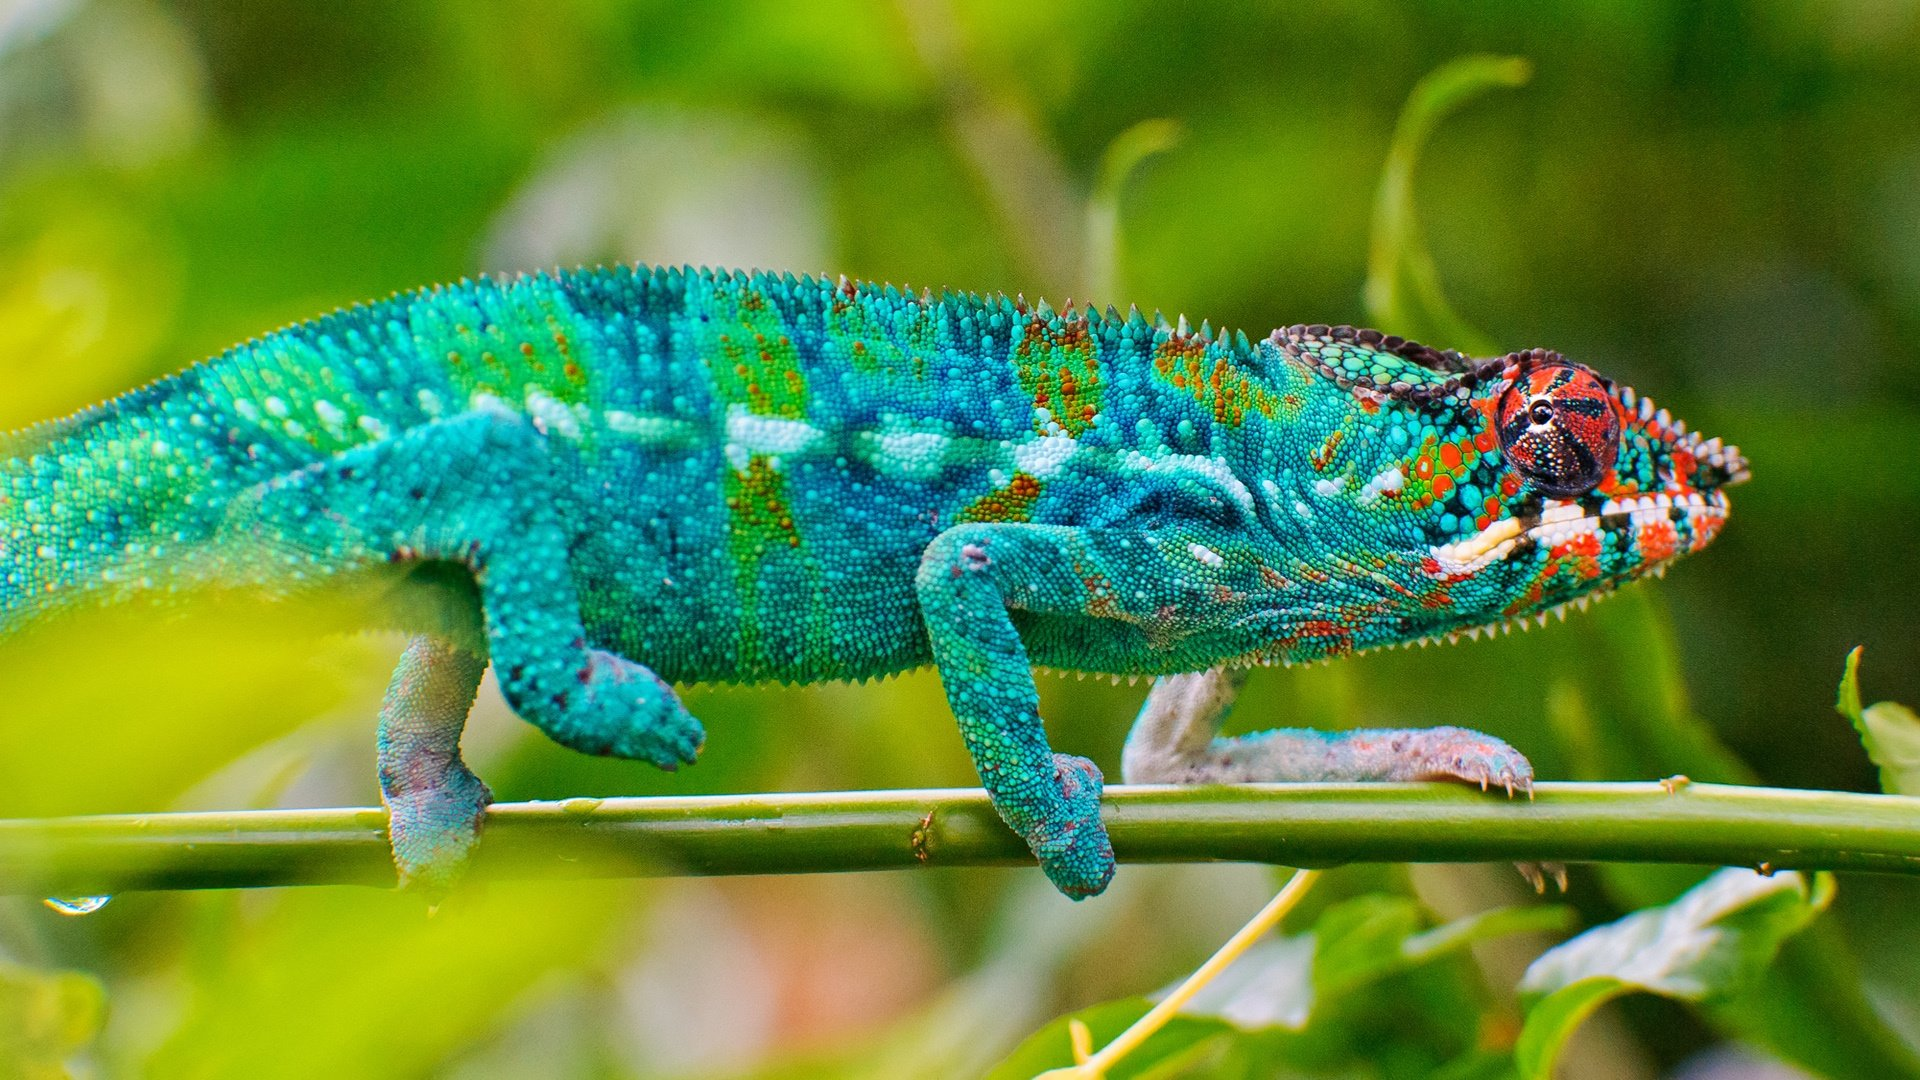 Awesome Chameleon free wallpaper ID:462488 for hd 1920x1080 desktop